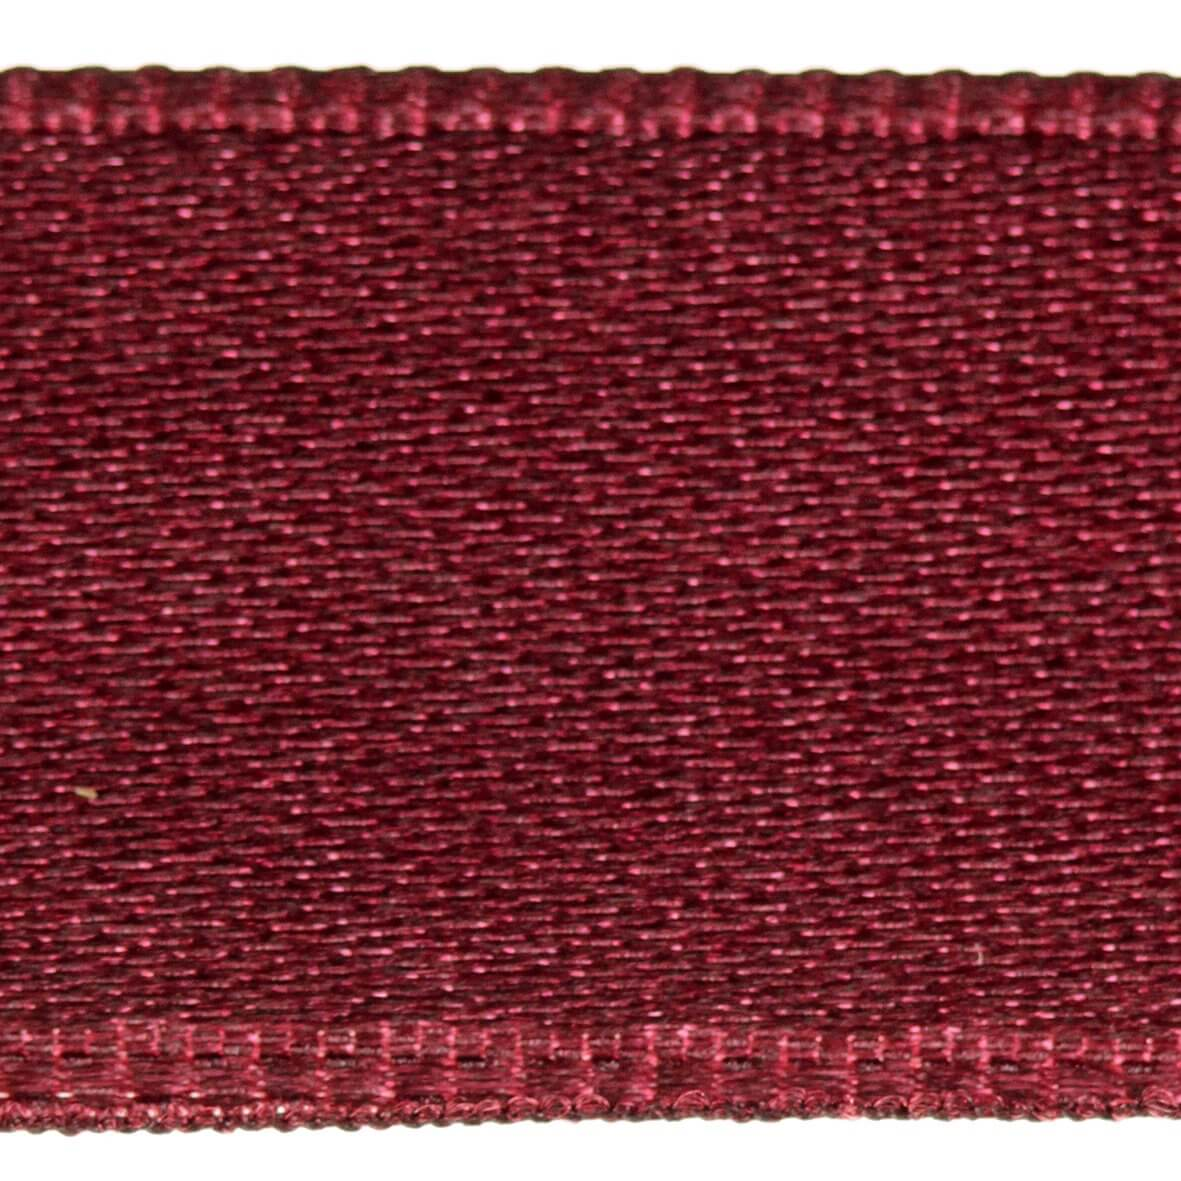 Dark Burgundy Col. 385 - 25mm Satab Satin Ribbon